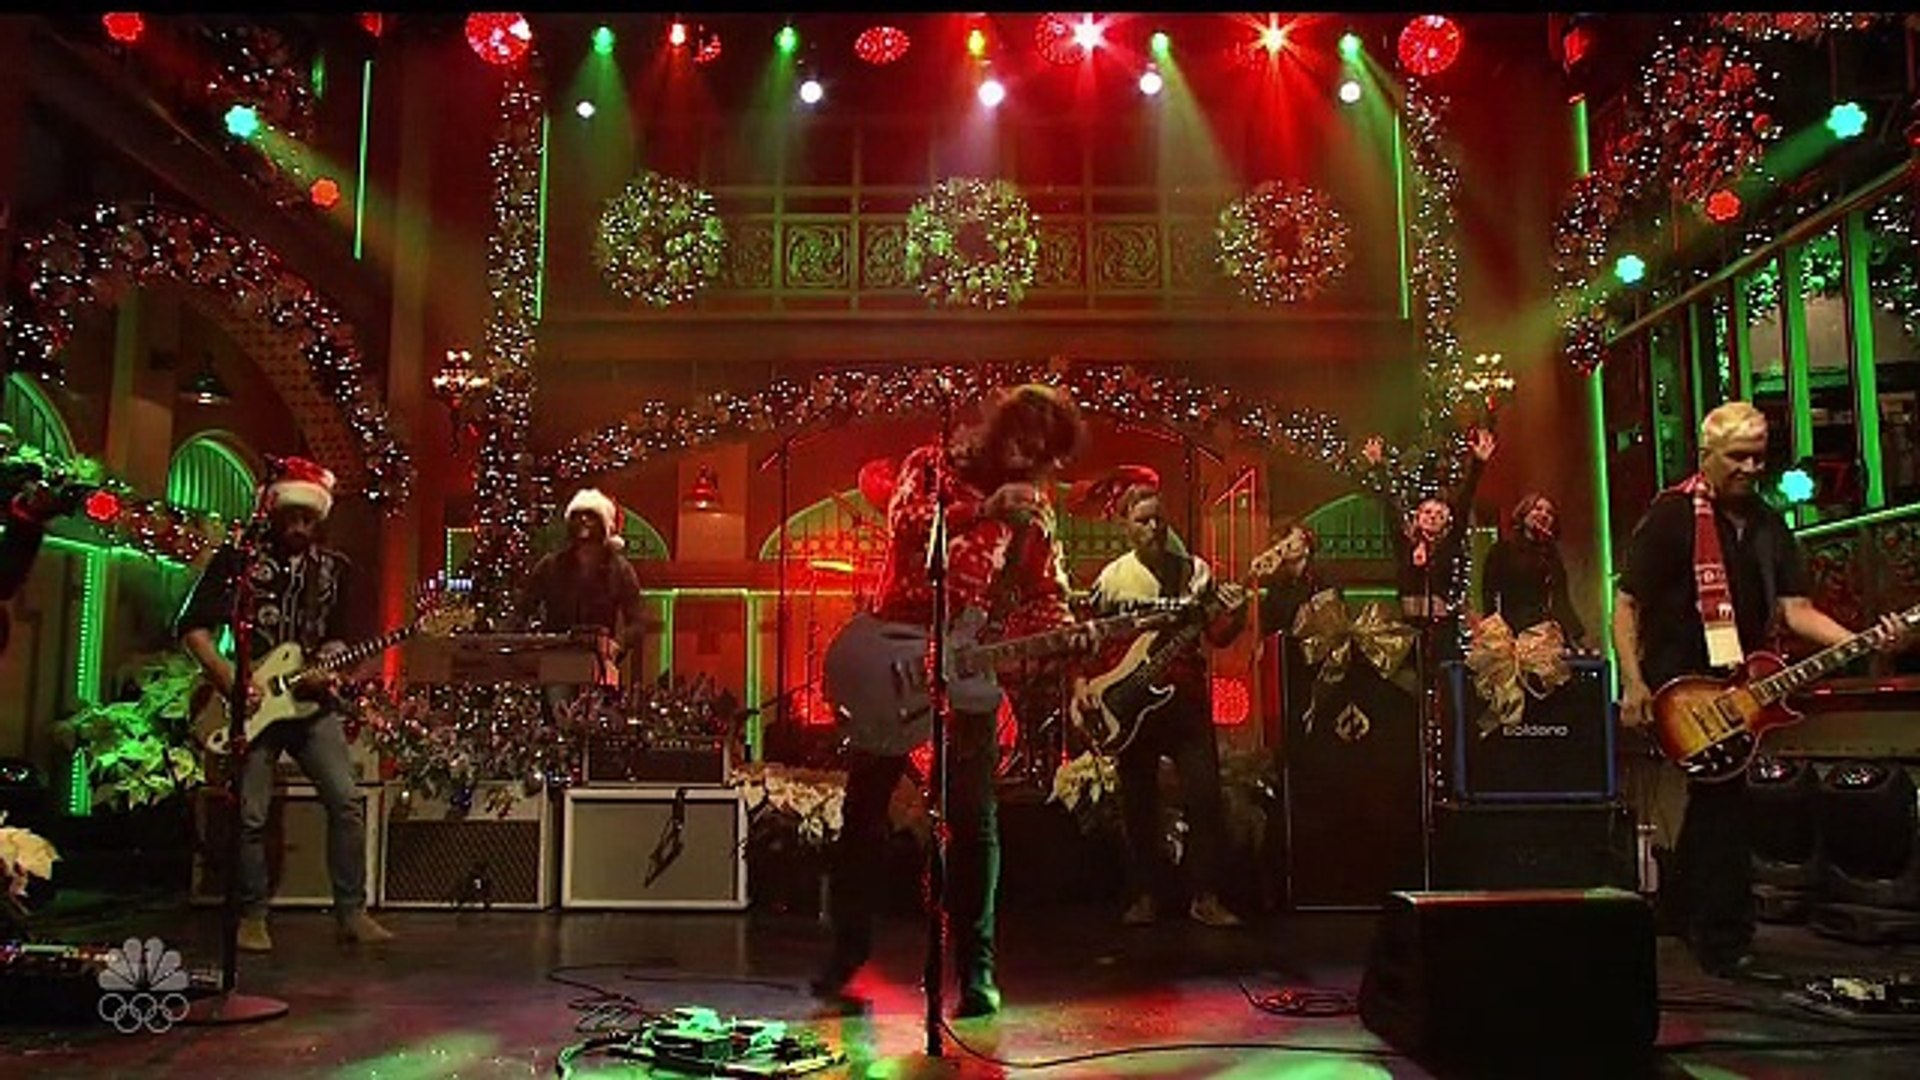 Foo Fighters Snl Christmas.Foo Fighters Christmas Medley Video Dailymotion